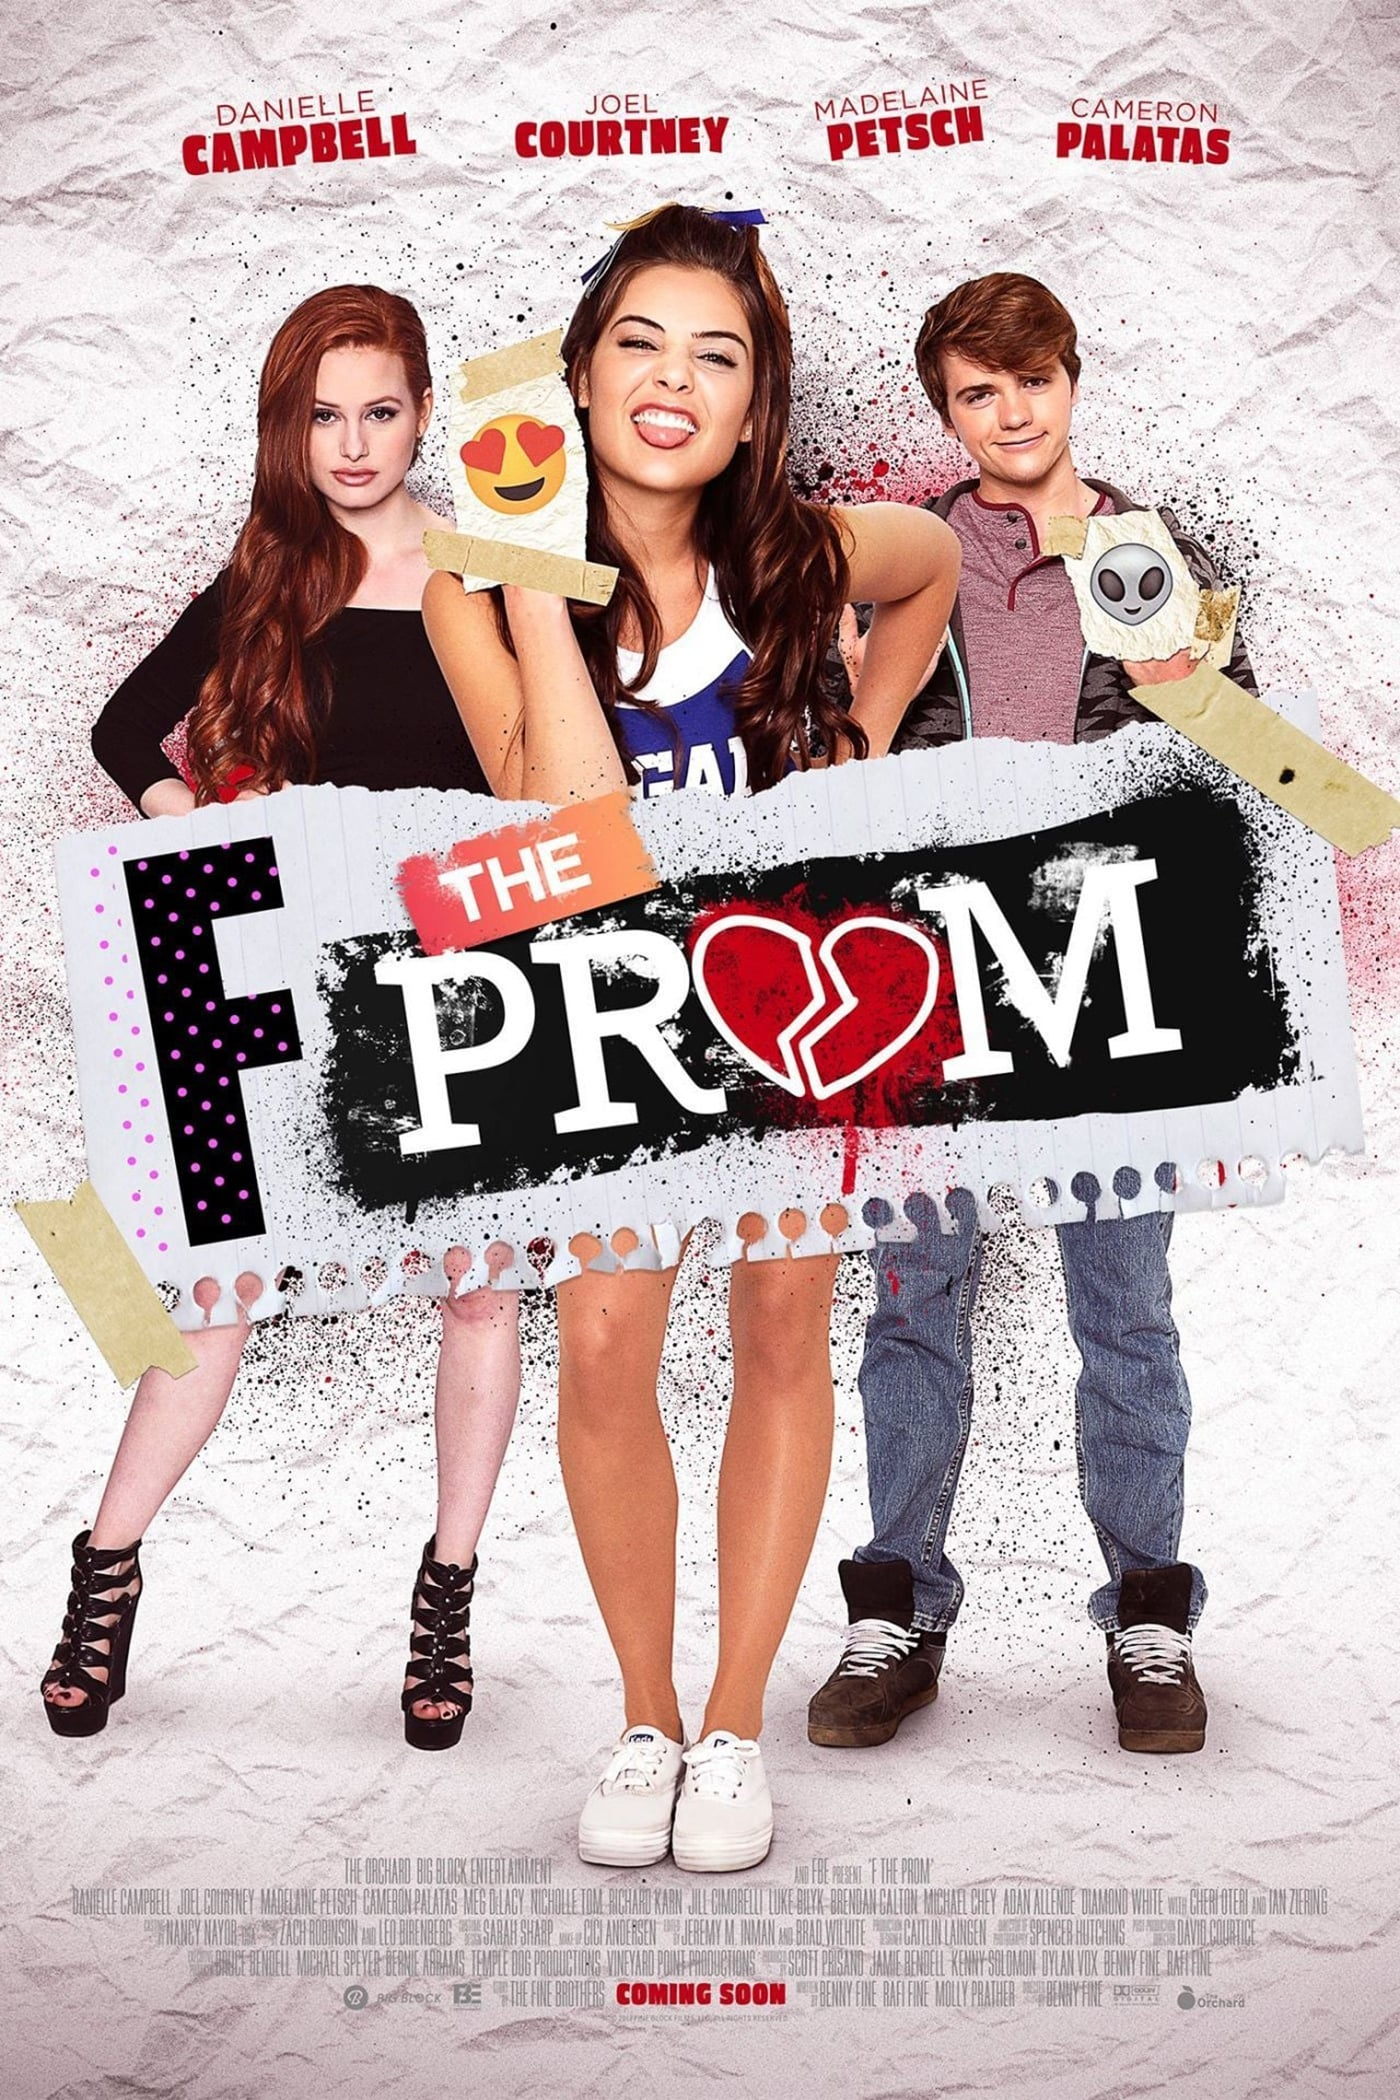 f the prom